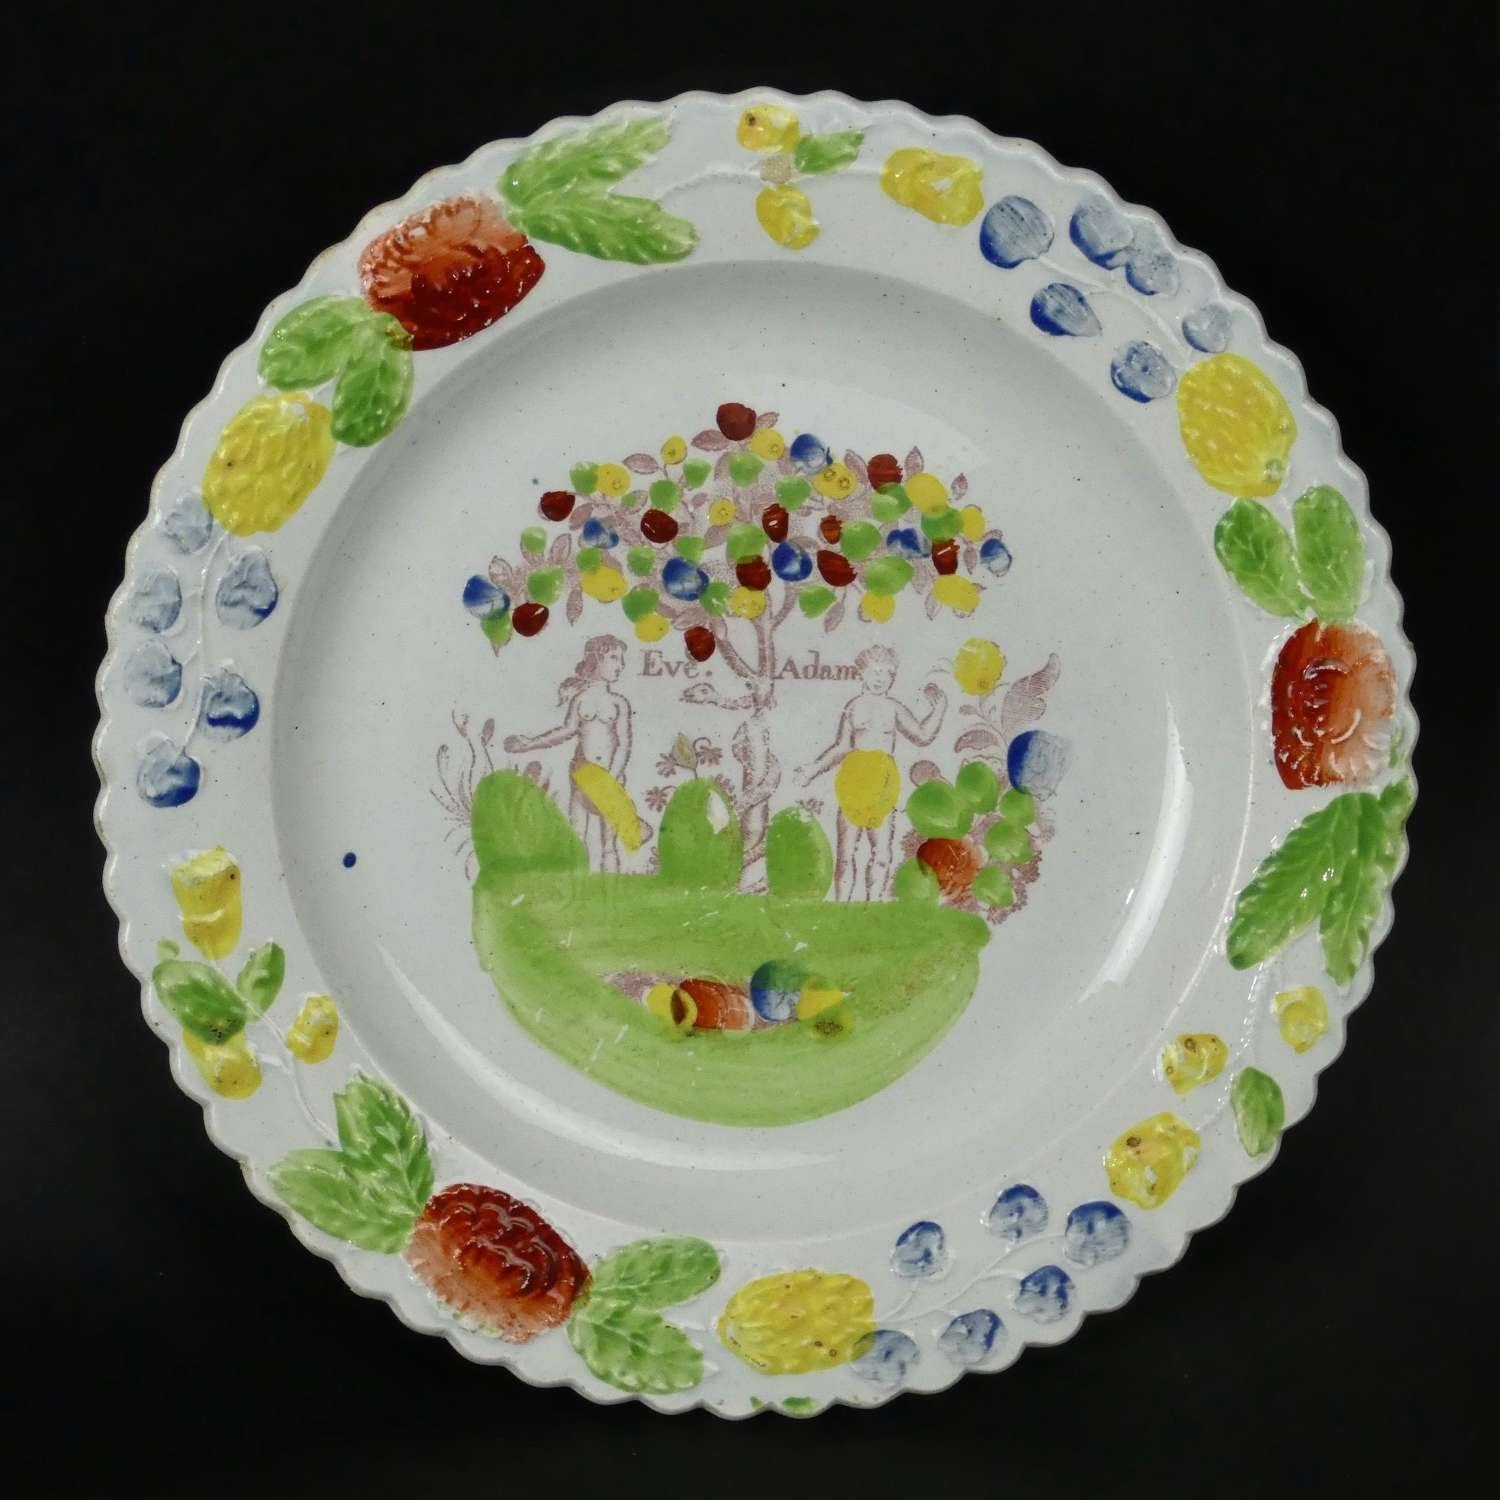 Child's plate printed with Eve & Adam